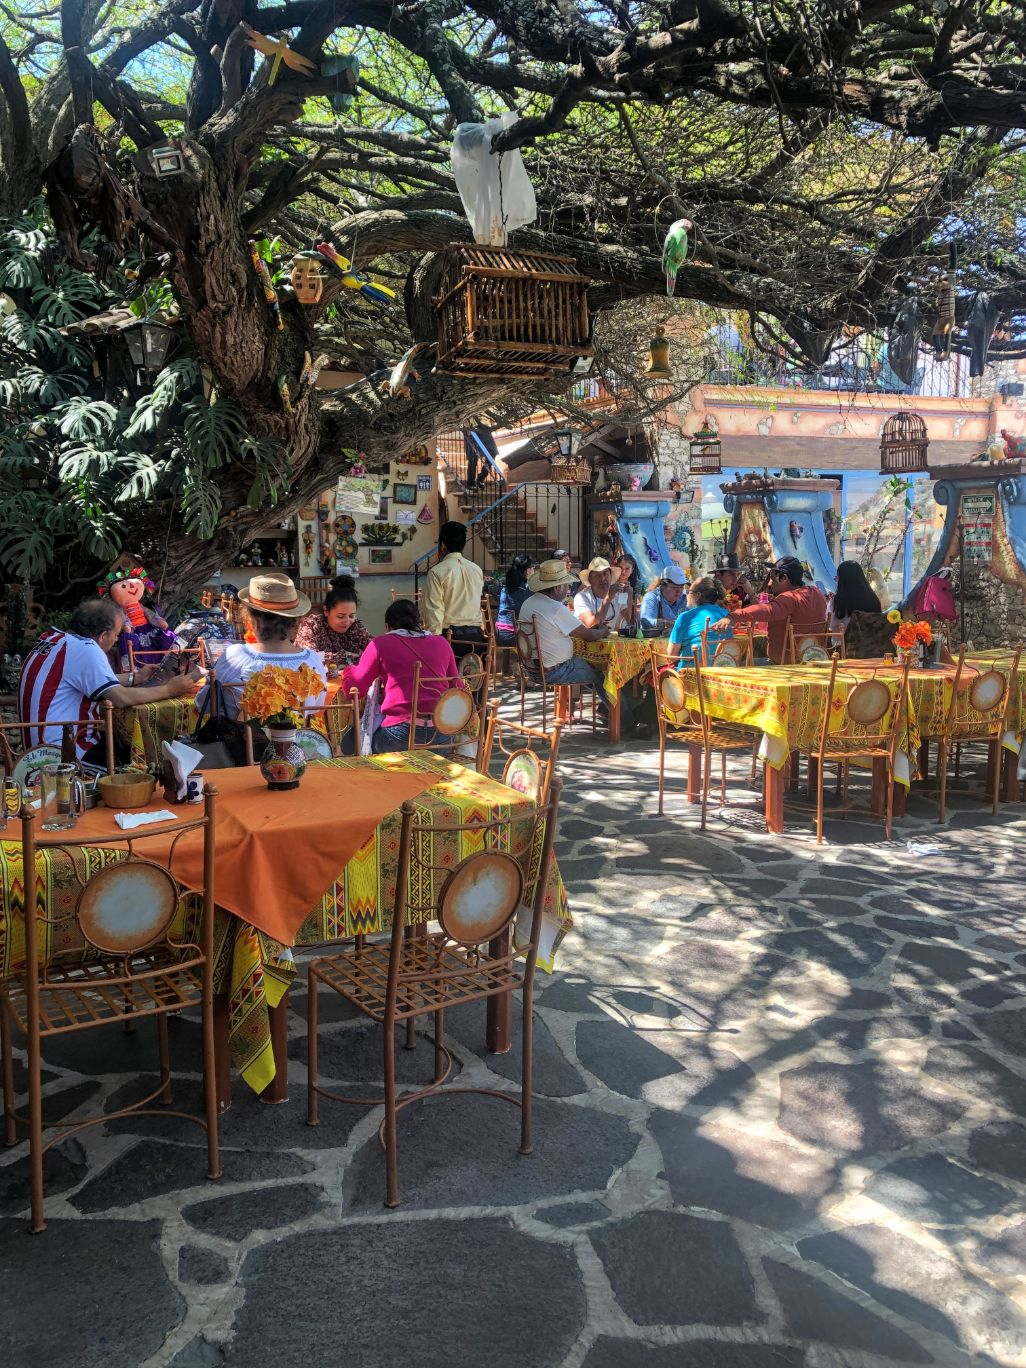 Restaurant El Mezquite courtyard under a tree in Bernal